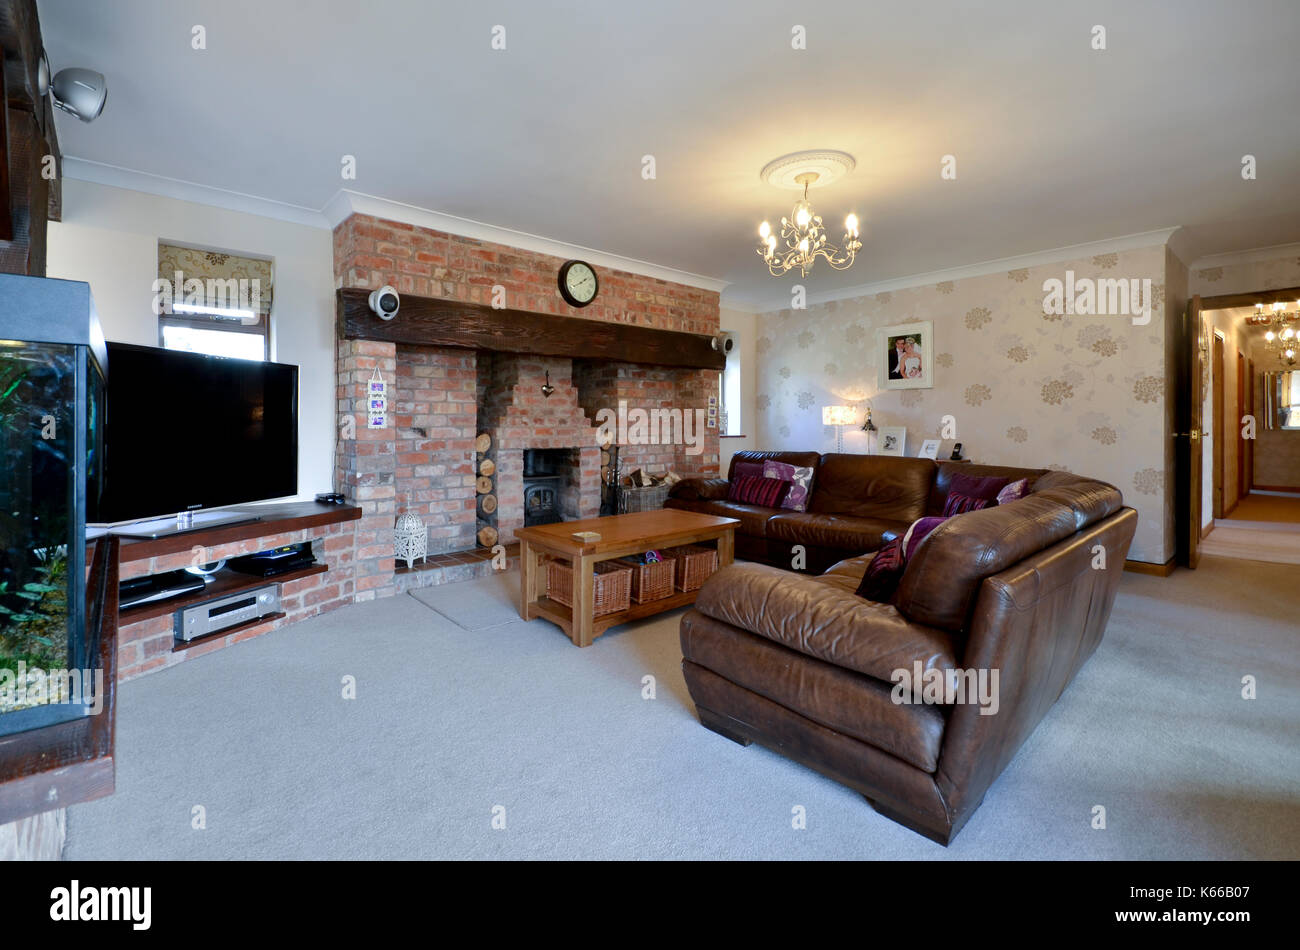 Sitting Room With Large Leather Sofa And Brick Fireplace